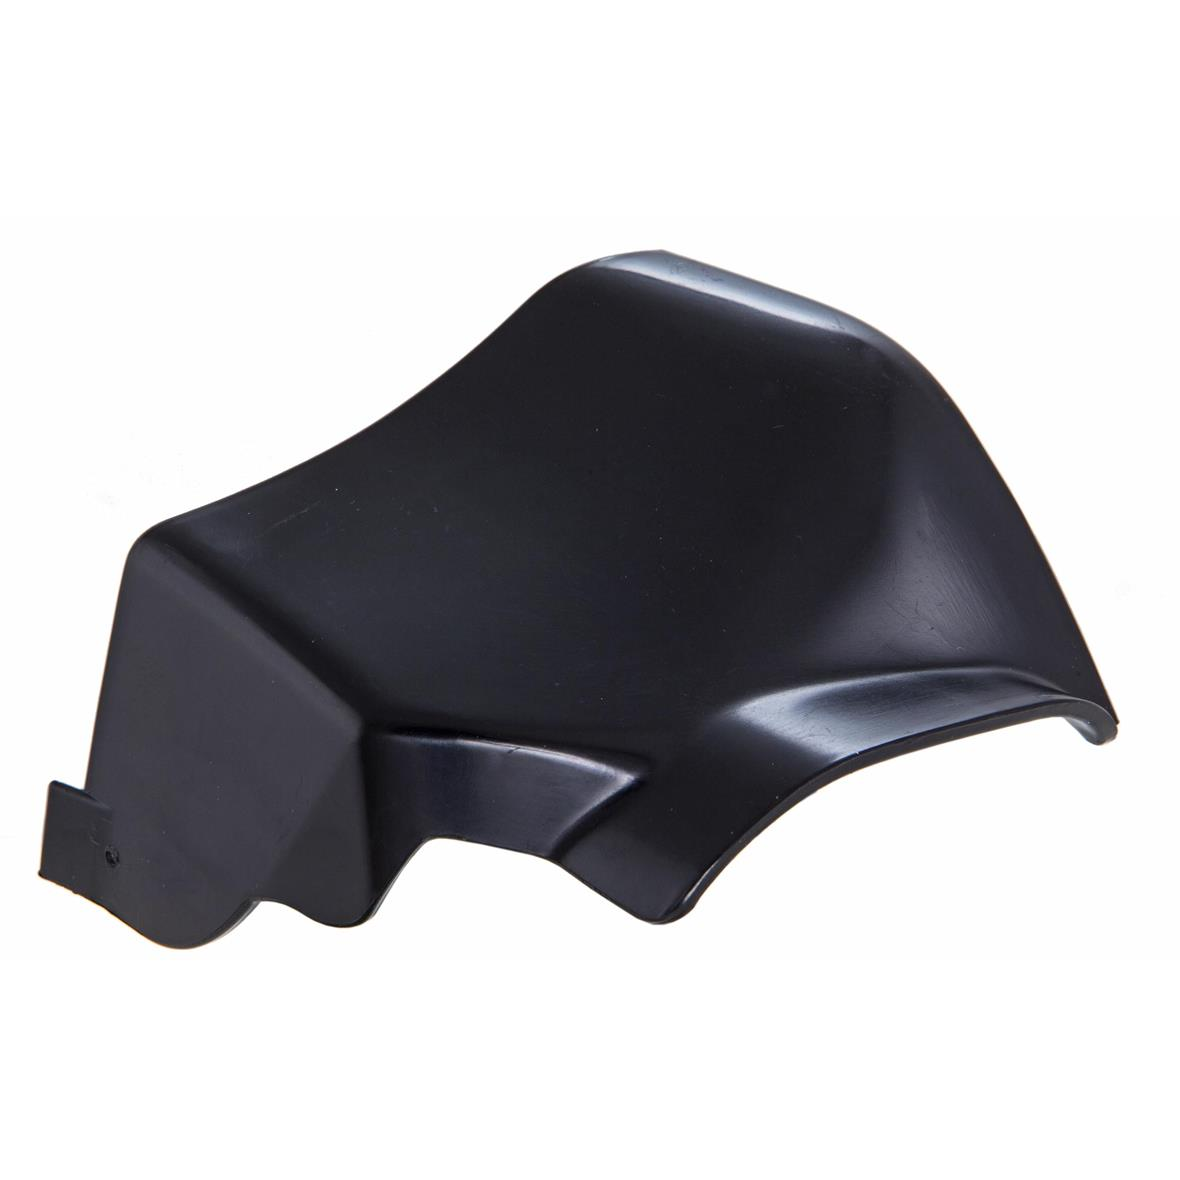 Product Image for 'End Piece Underbody PIAGGIO lower, leftTitle'